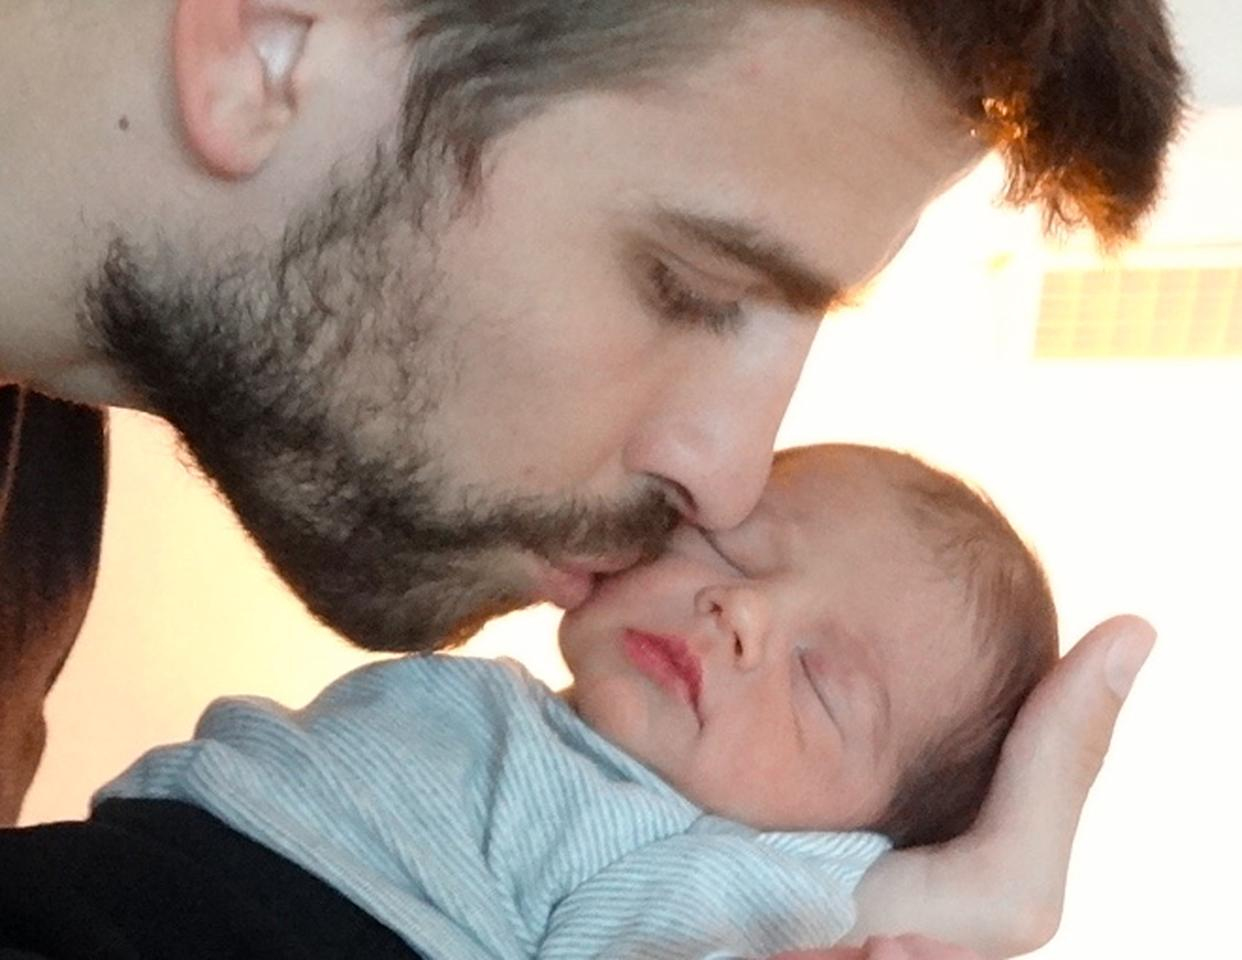 SPAIN - FEBRUARY 04:  In this handout provided by UNICEF, Gerard Pique and Shakira introduce their son, Milan Pique Mebarak on February 4, 2013.  Milan was born on January 22, 2013 in Barcelona, Spain.  (Photo by UNICEF via Getty Images)